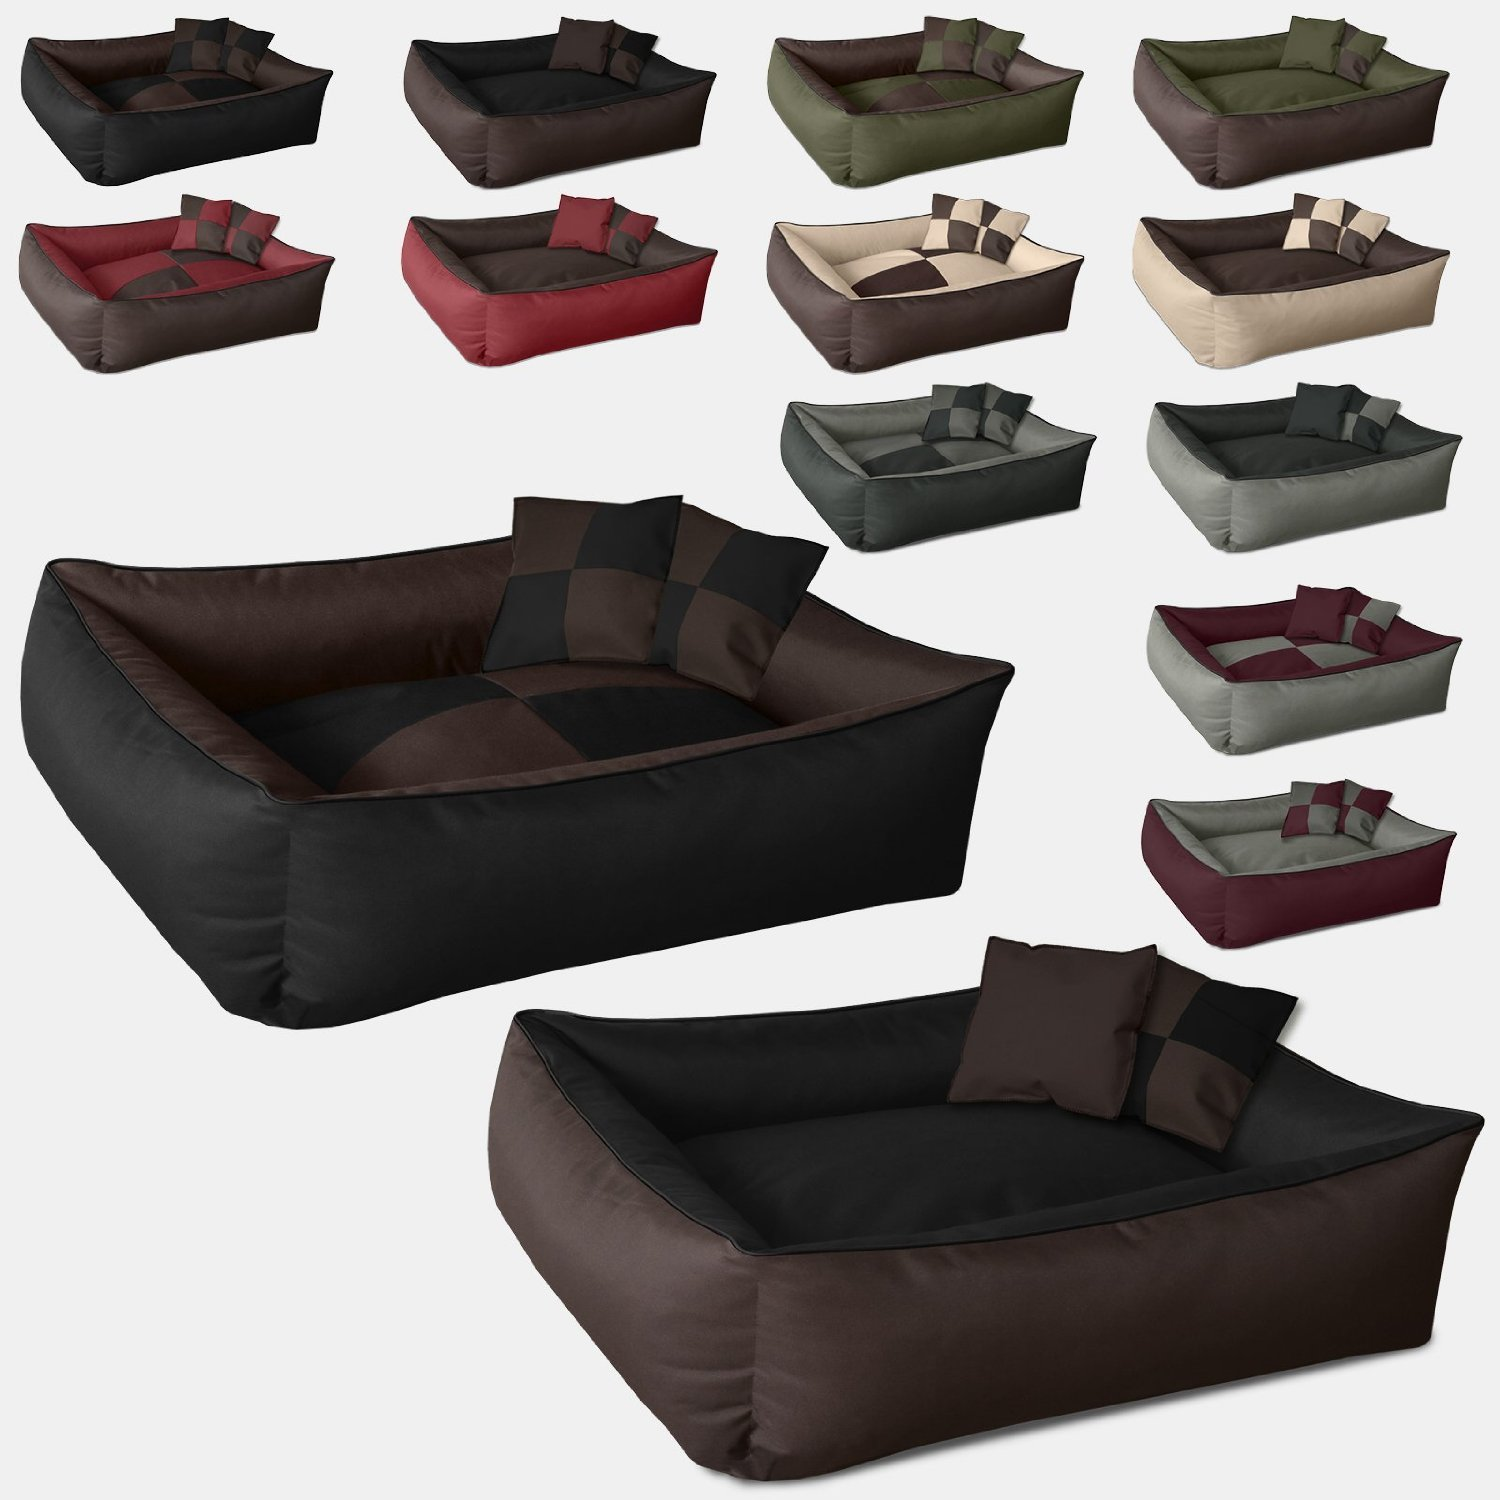 letto per cani ad ognuno il suo. Black Bedroom Furniture Sets. Home Design Ideas